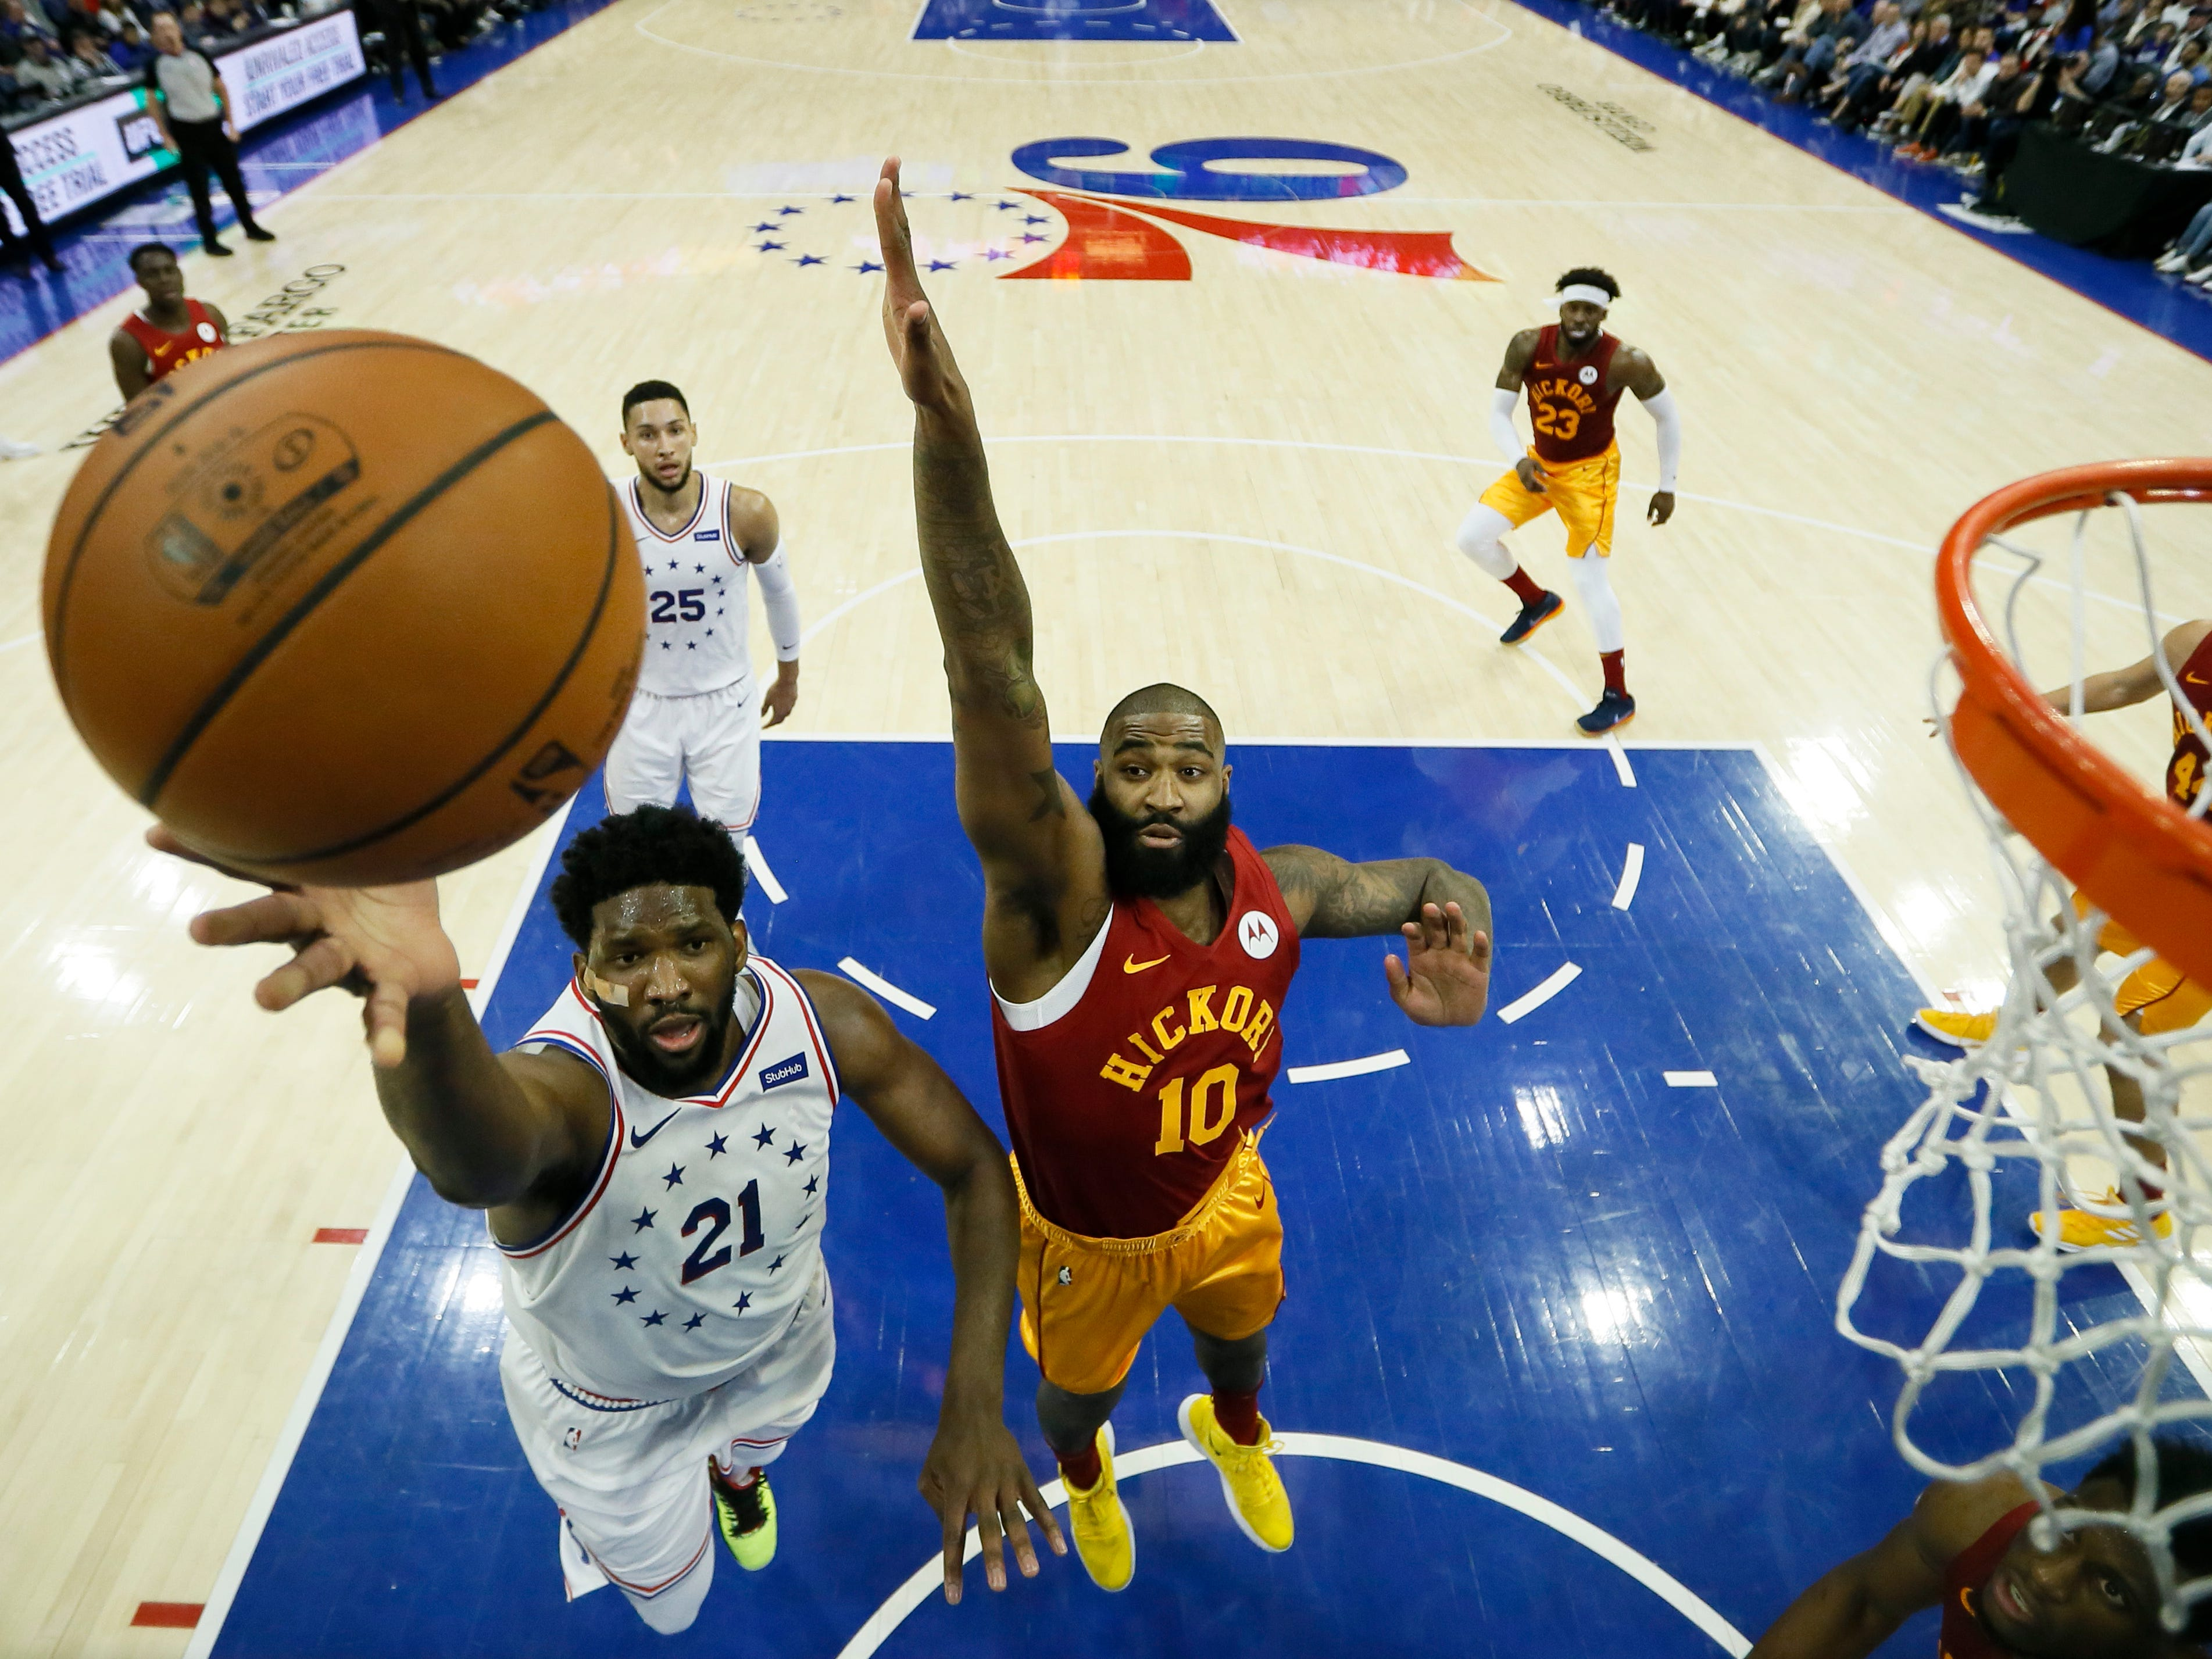 Philadelphia 76ers' Joel Embiid (21) goes up for a shot past Indiana Pacers' Kyle O'Quinn (10) during the first half of an NBA basketball game, Sunday, March 10, 2019, in Philadelphia.